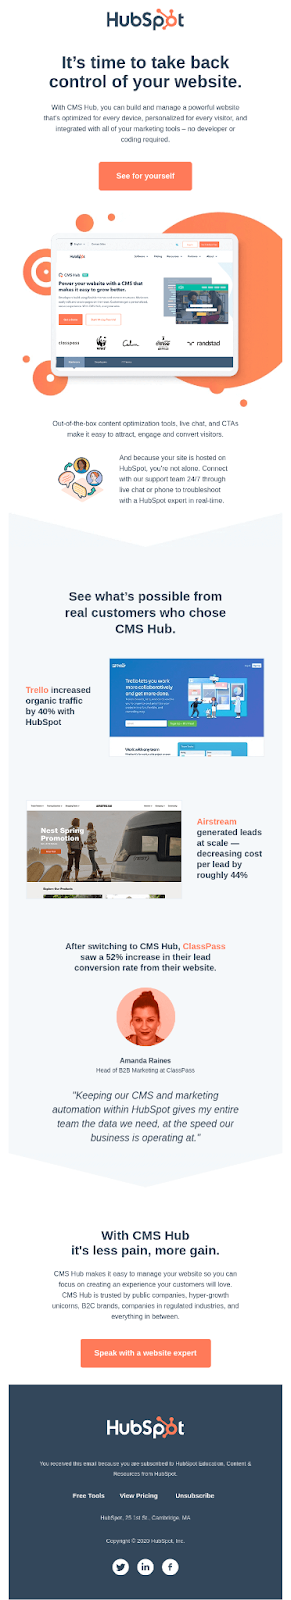 Email Blasts - An Example From Hubspot